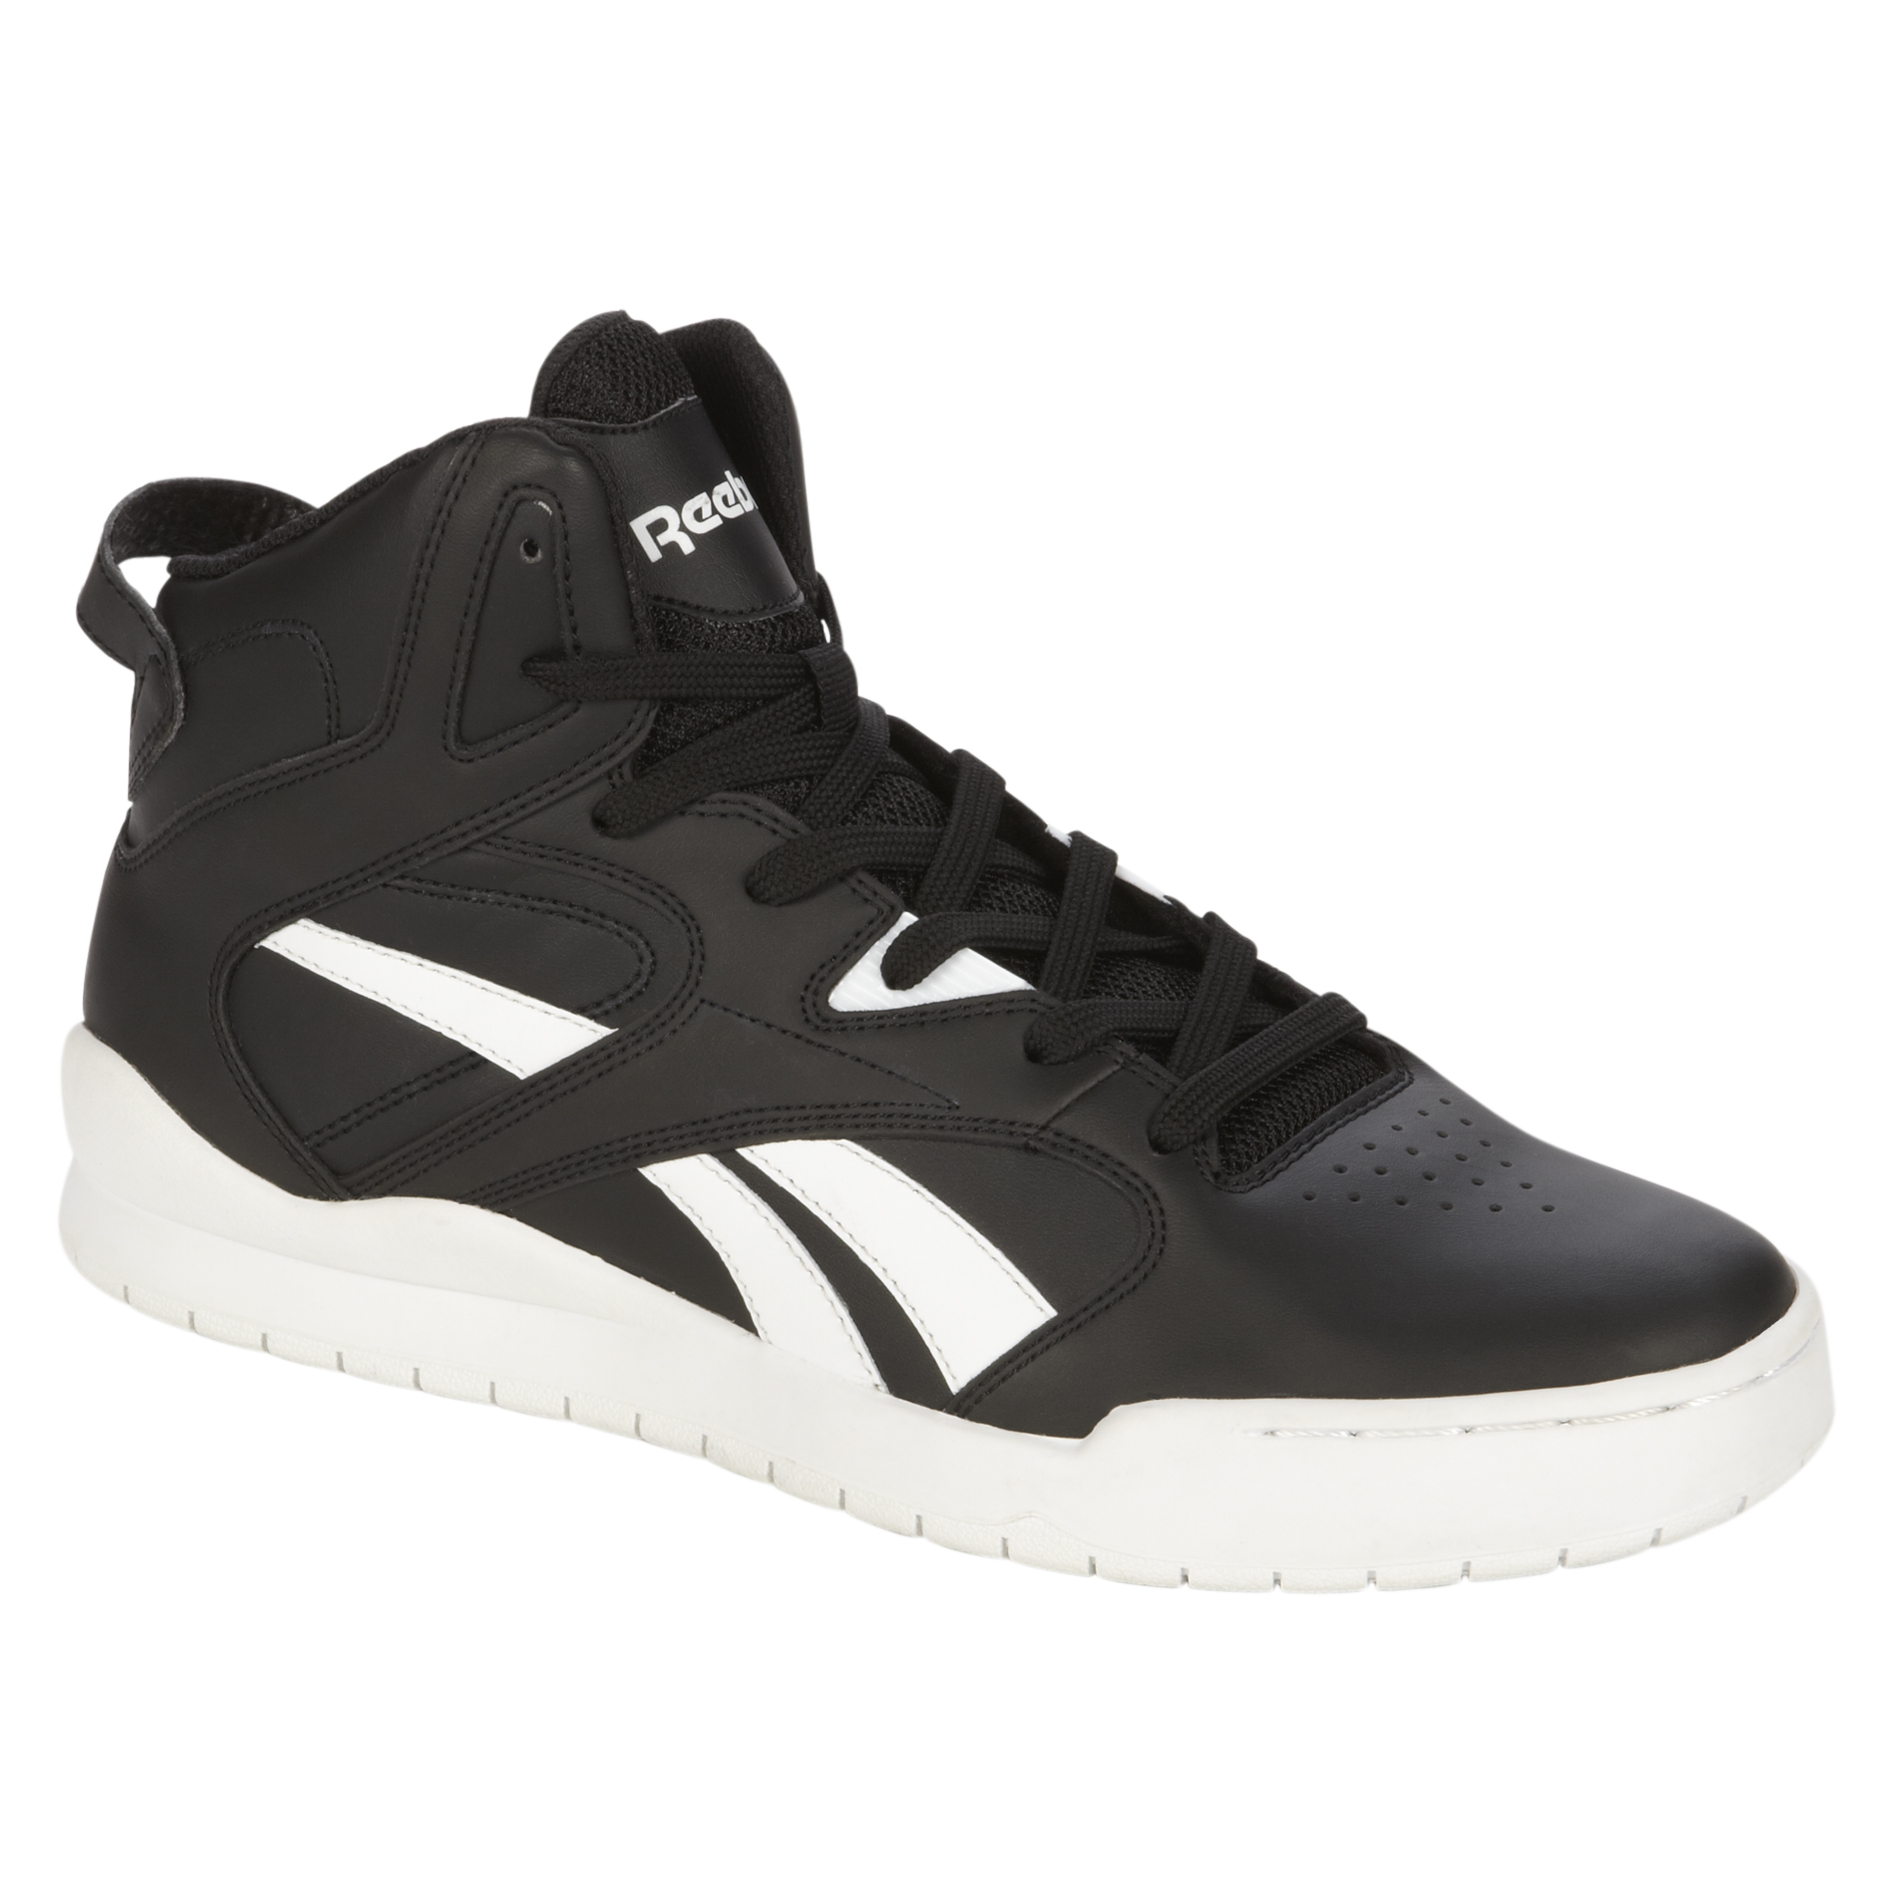 Reebok Men' Bb4700 Mid Black White High-top Basketball Shoes